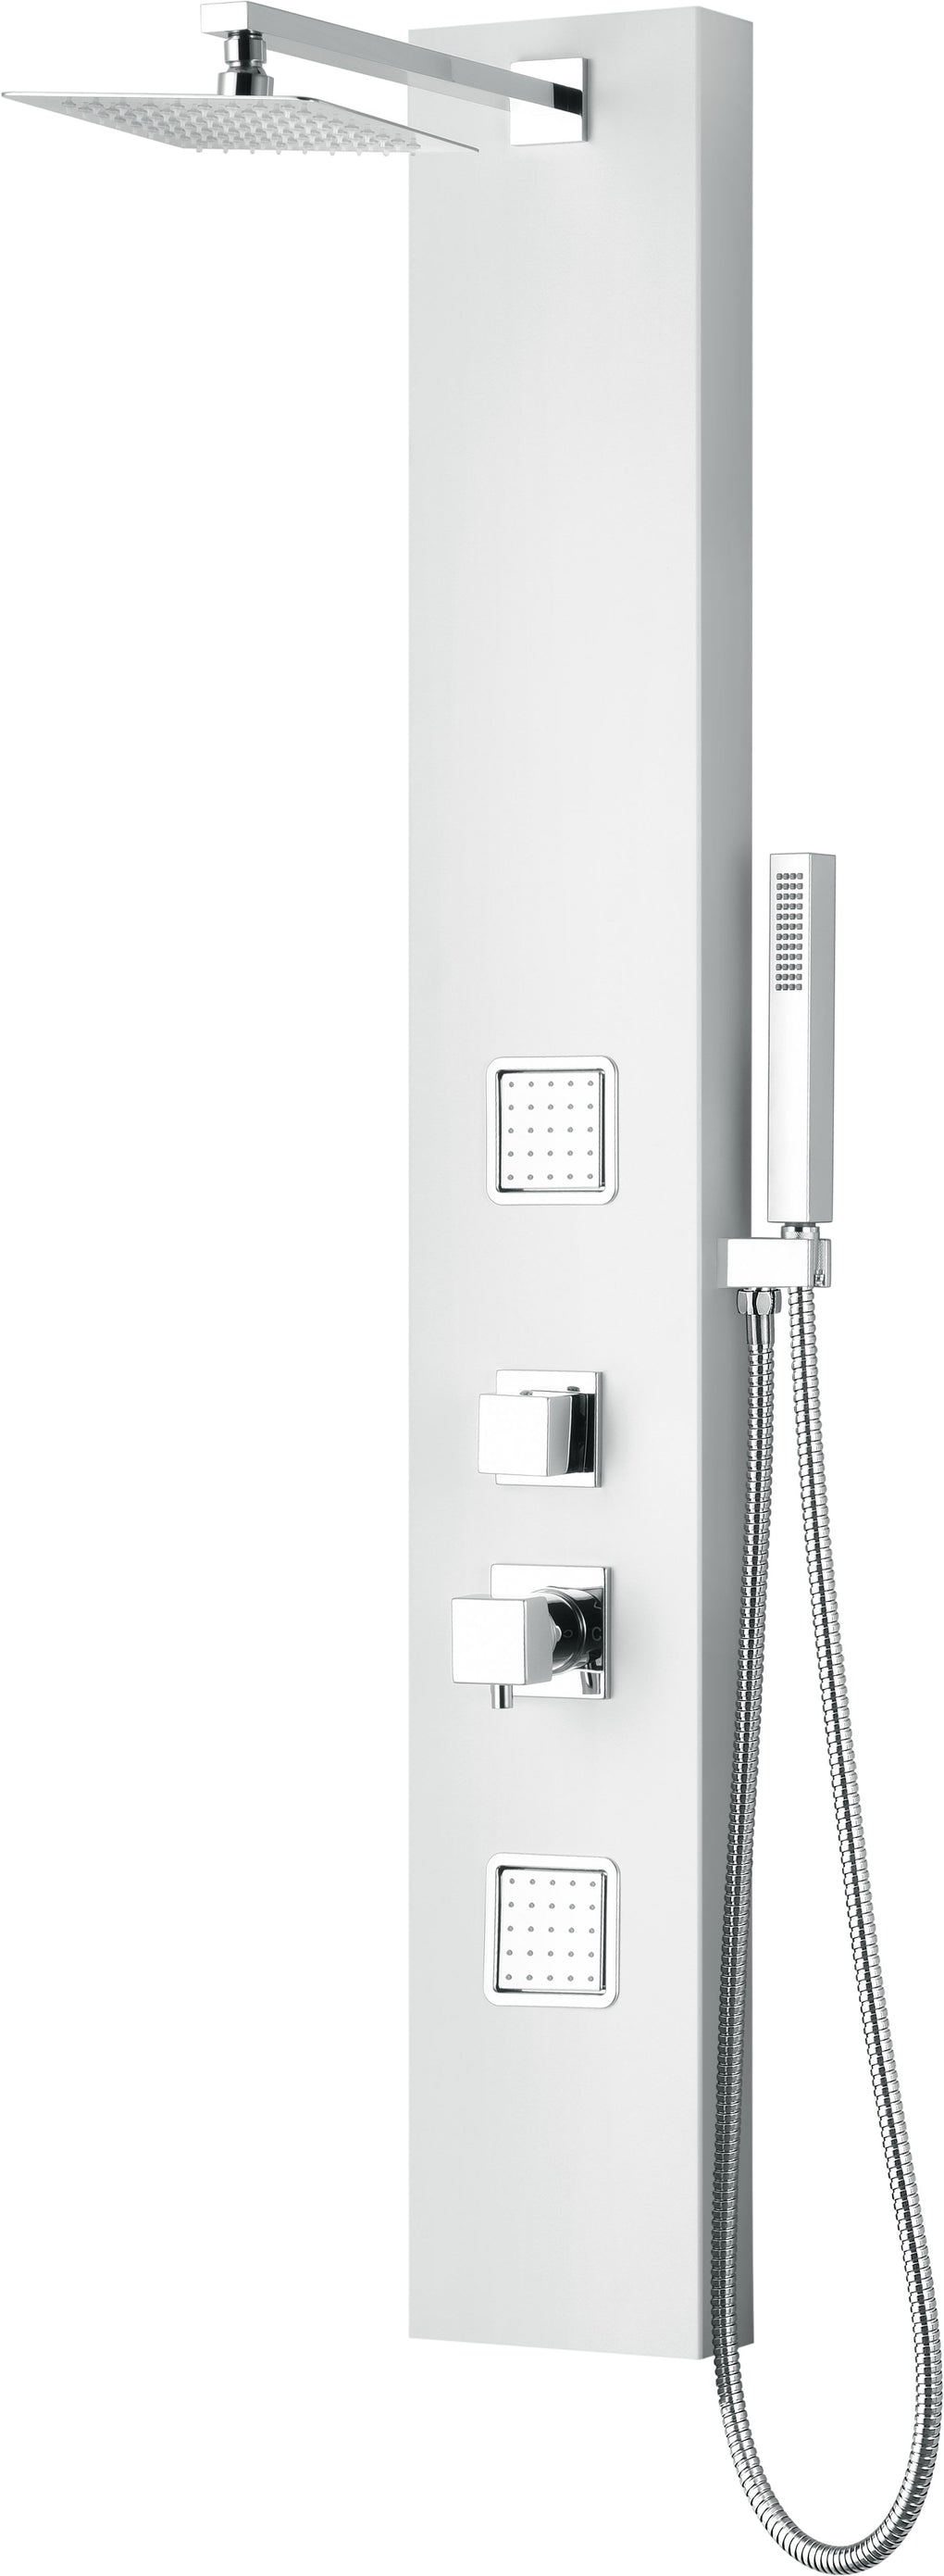 White Aluminum Shower Panel with 2 Body Sprays and Rain Shower Head - FaucetMart